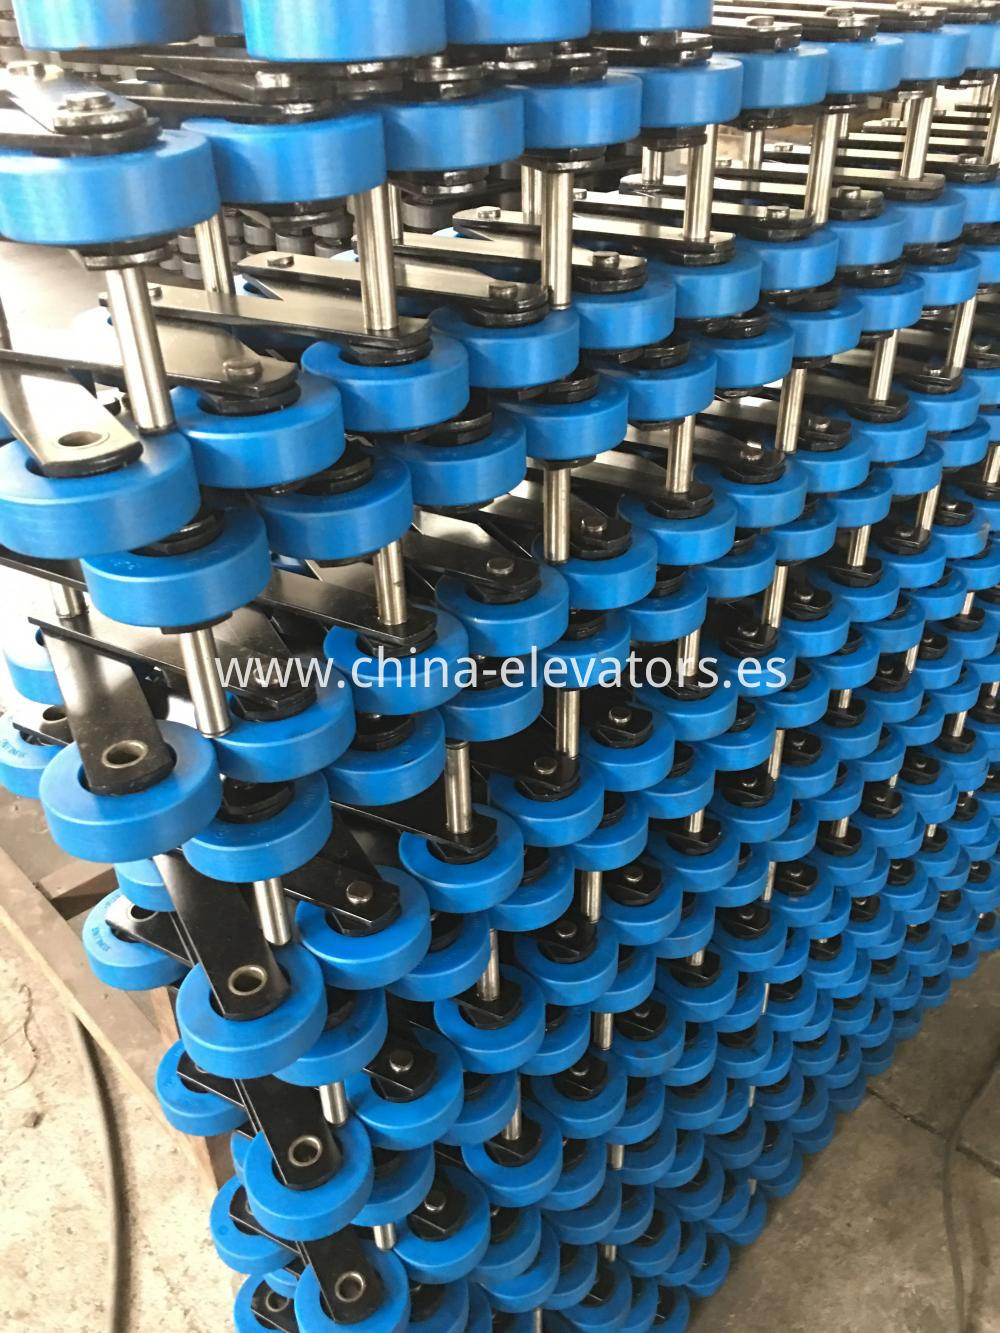 Thyssen Escalator Step Chains FT722/FT723/FT724